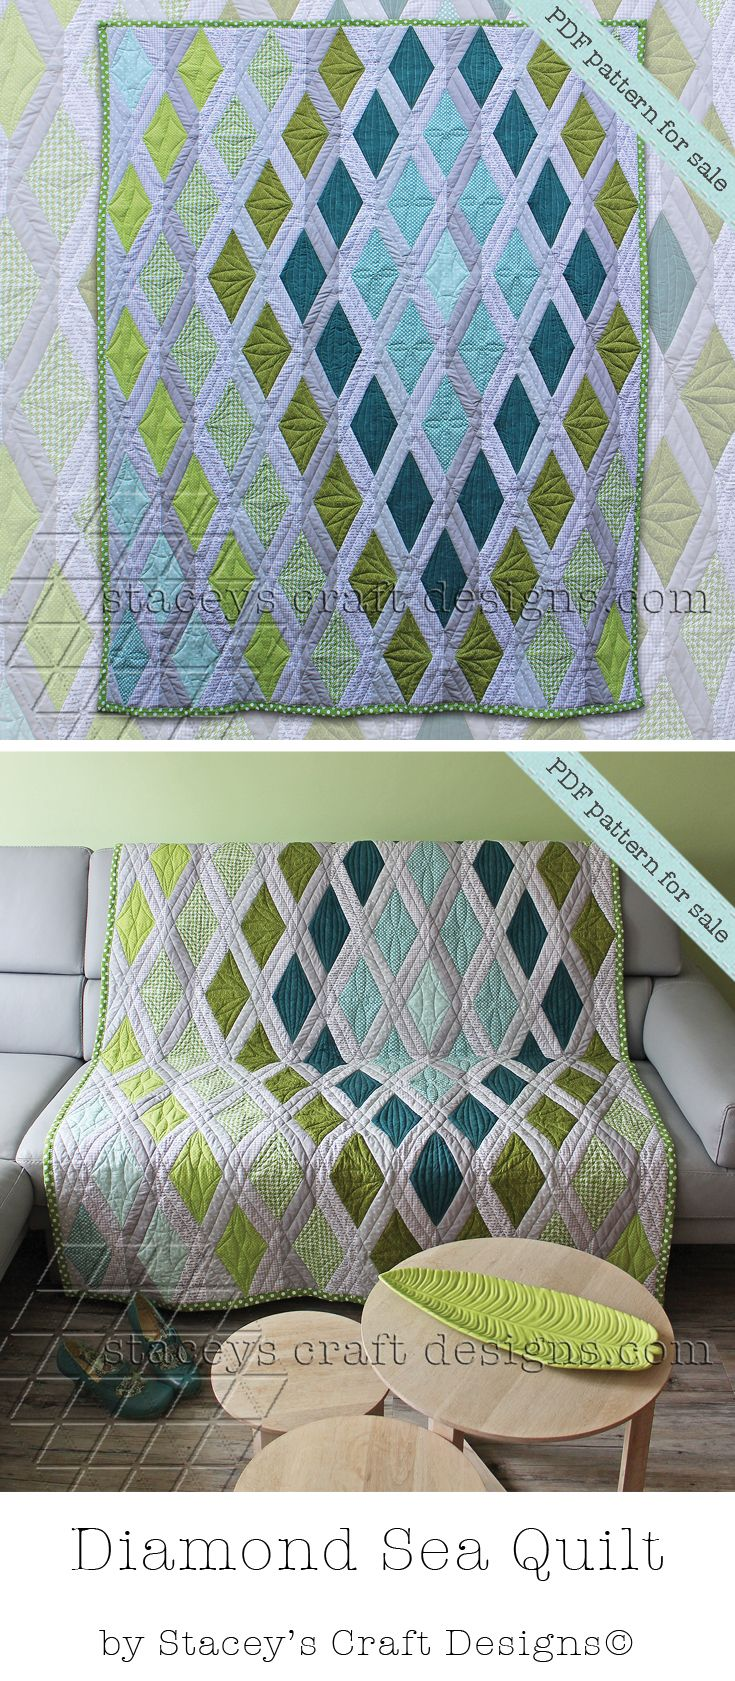 Diamond Sea Quilt - PDF Pattern by Stacey's Craft Designs